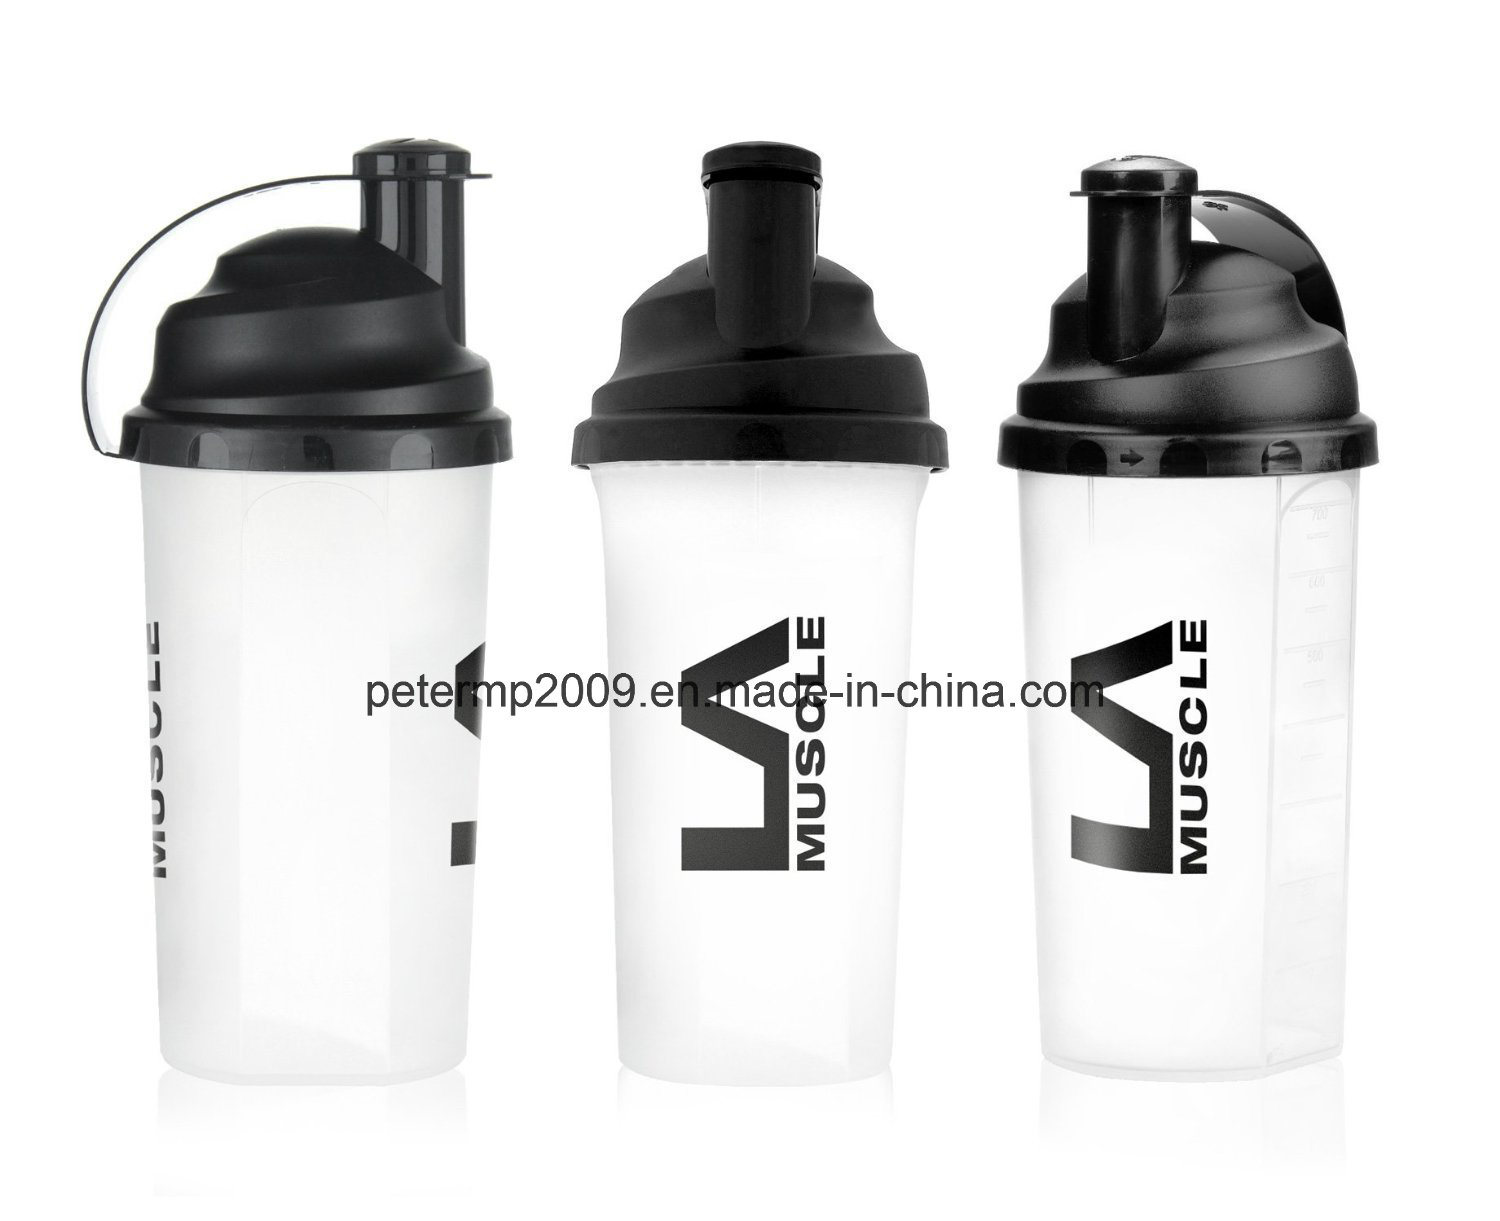 700ml 25oz Wholesale Custom Plastic Shaker Bottle, Plastic Cup for Cycling/Travel/Sport